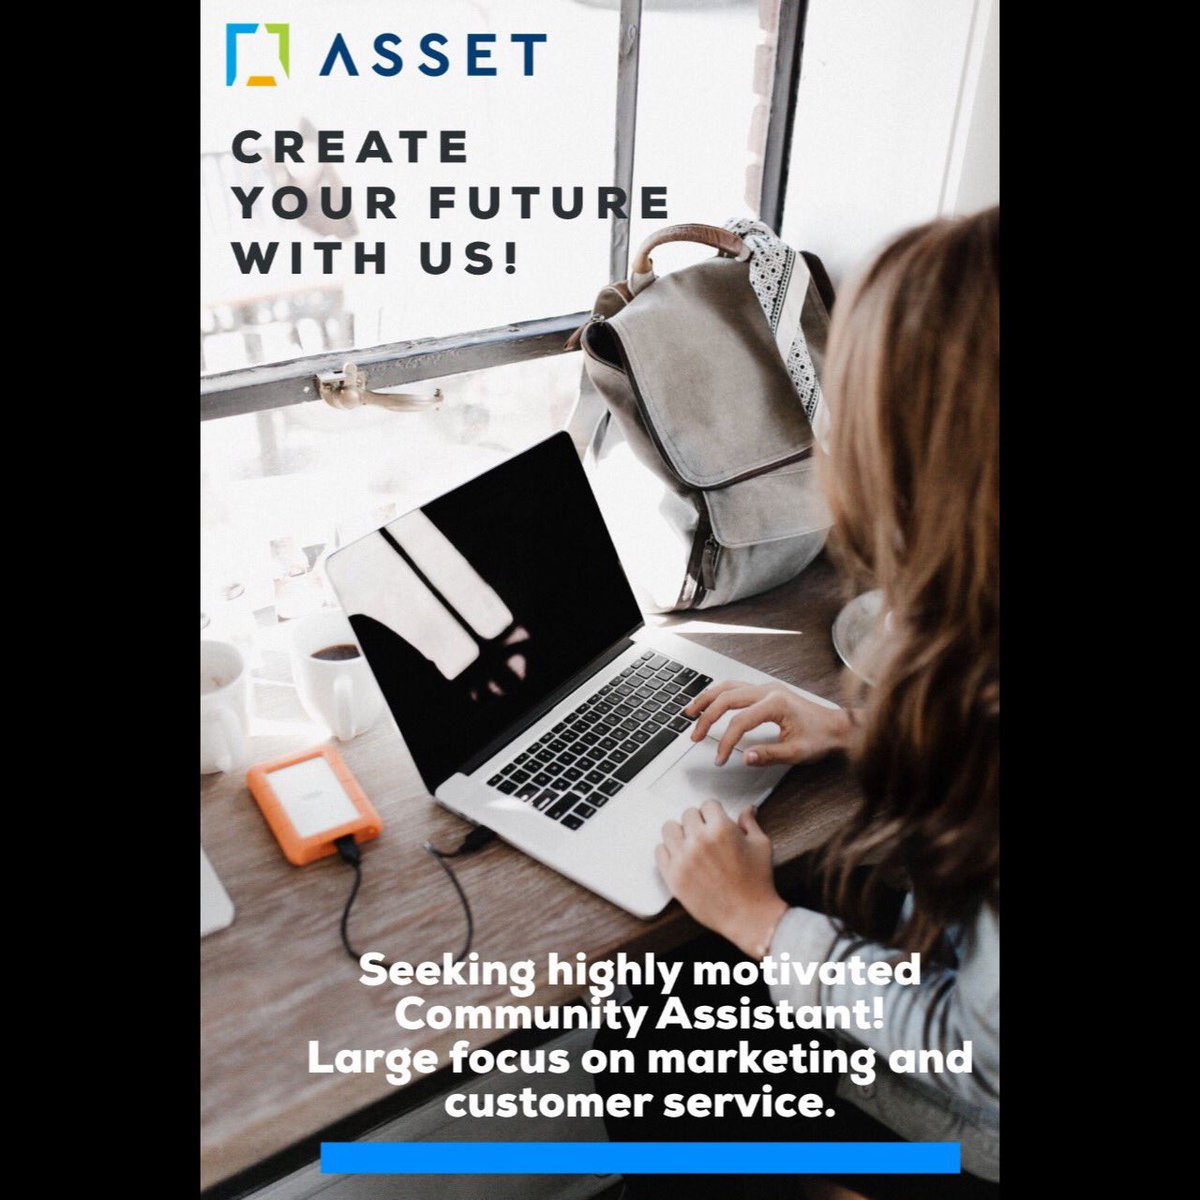 We're hiring Come join our amazing team Email your resume to susie.gamble@assetliving.com pic.twitter.com/0YH099wCly